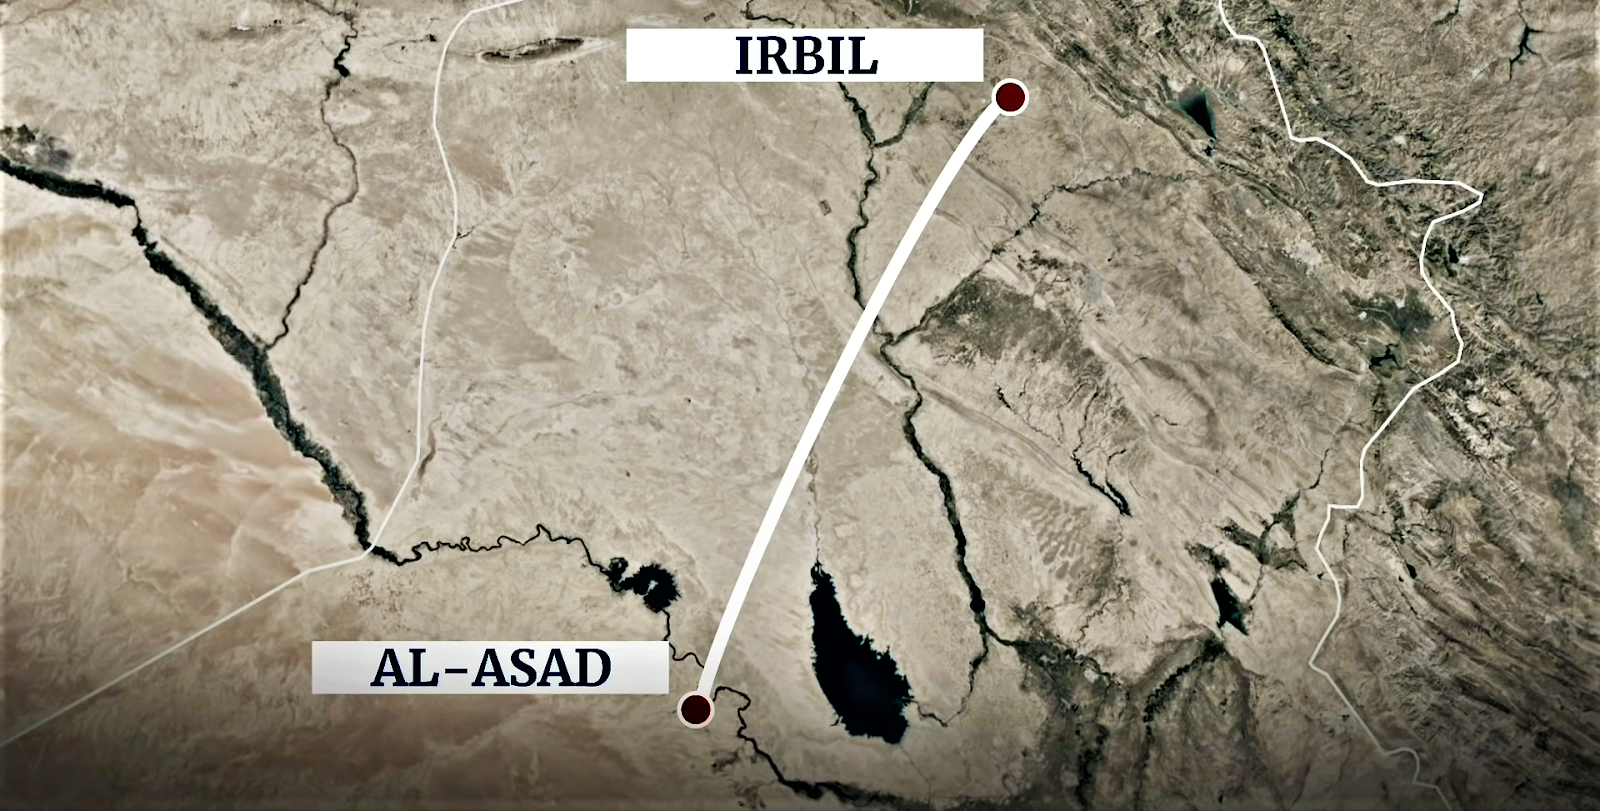 Iran fires missiles targeting US forces in Iraq.